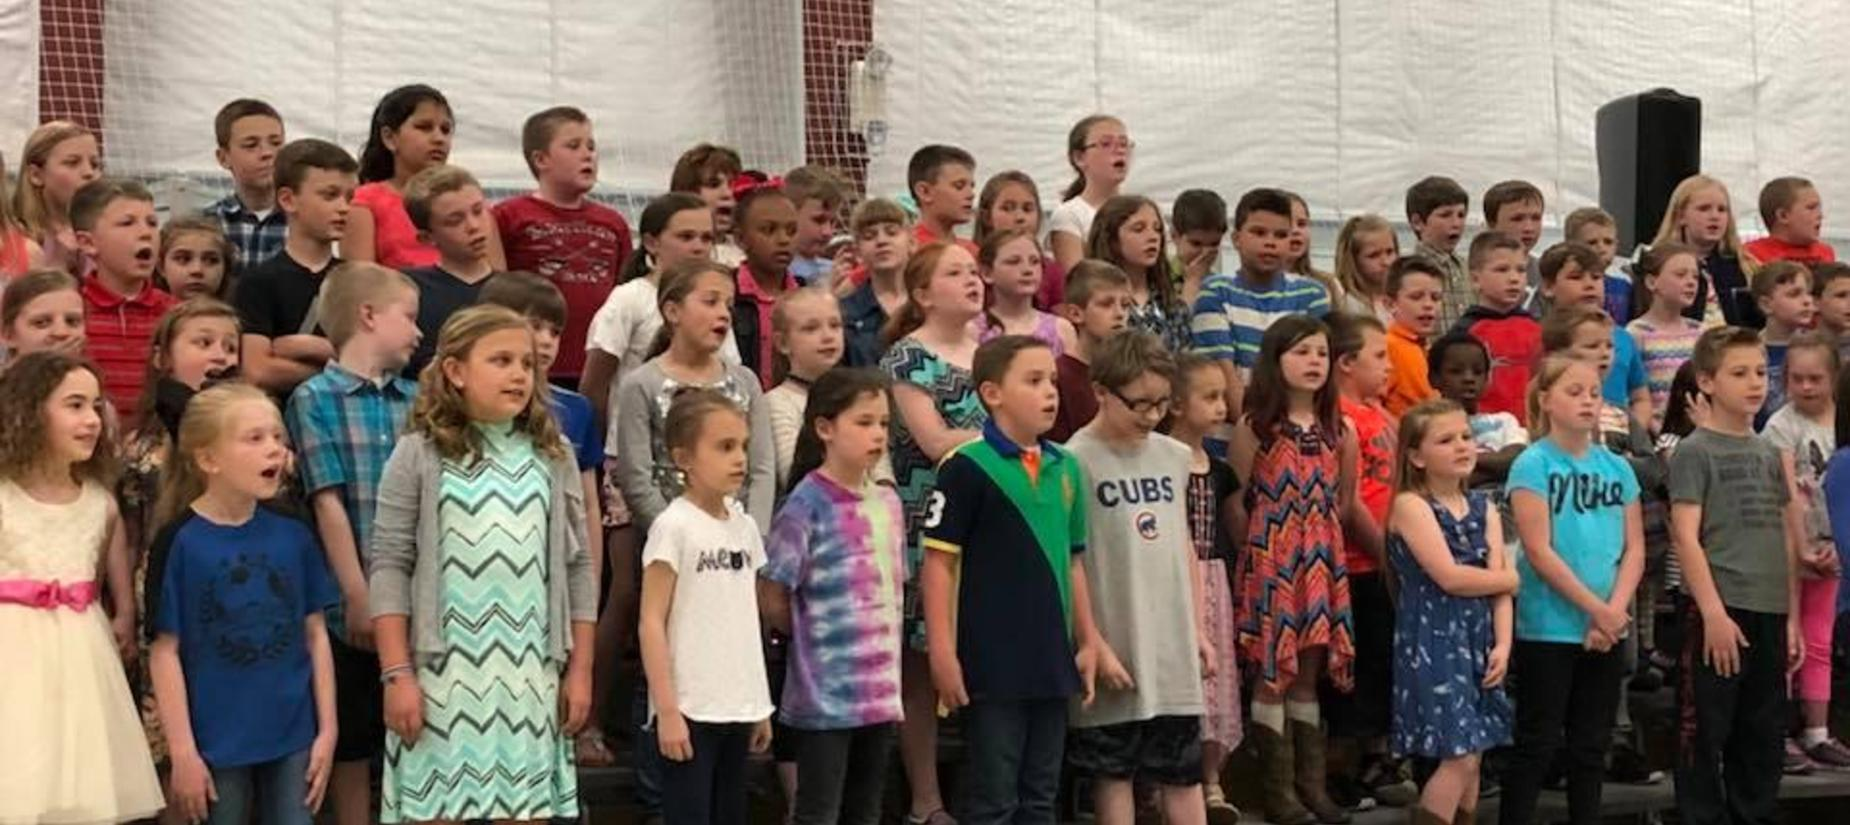 Carlinville Primary School students participating in a concert